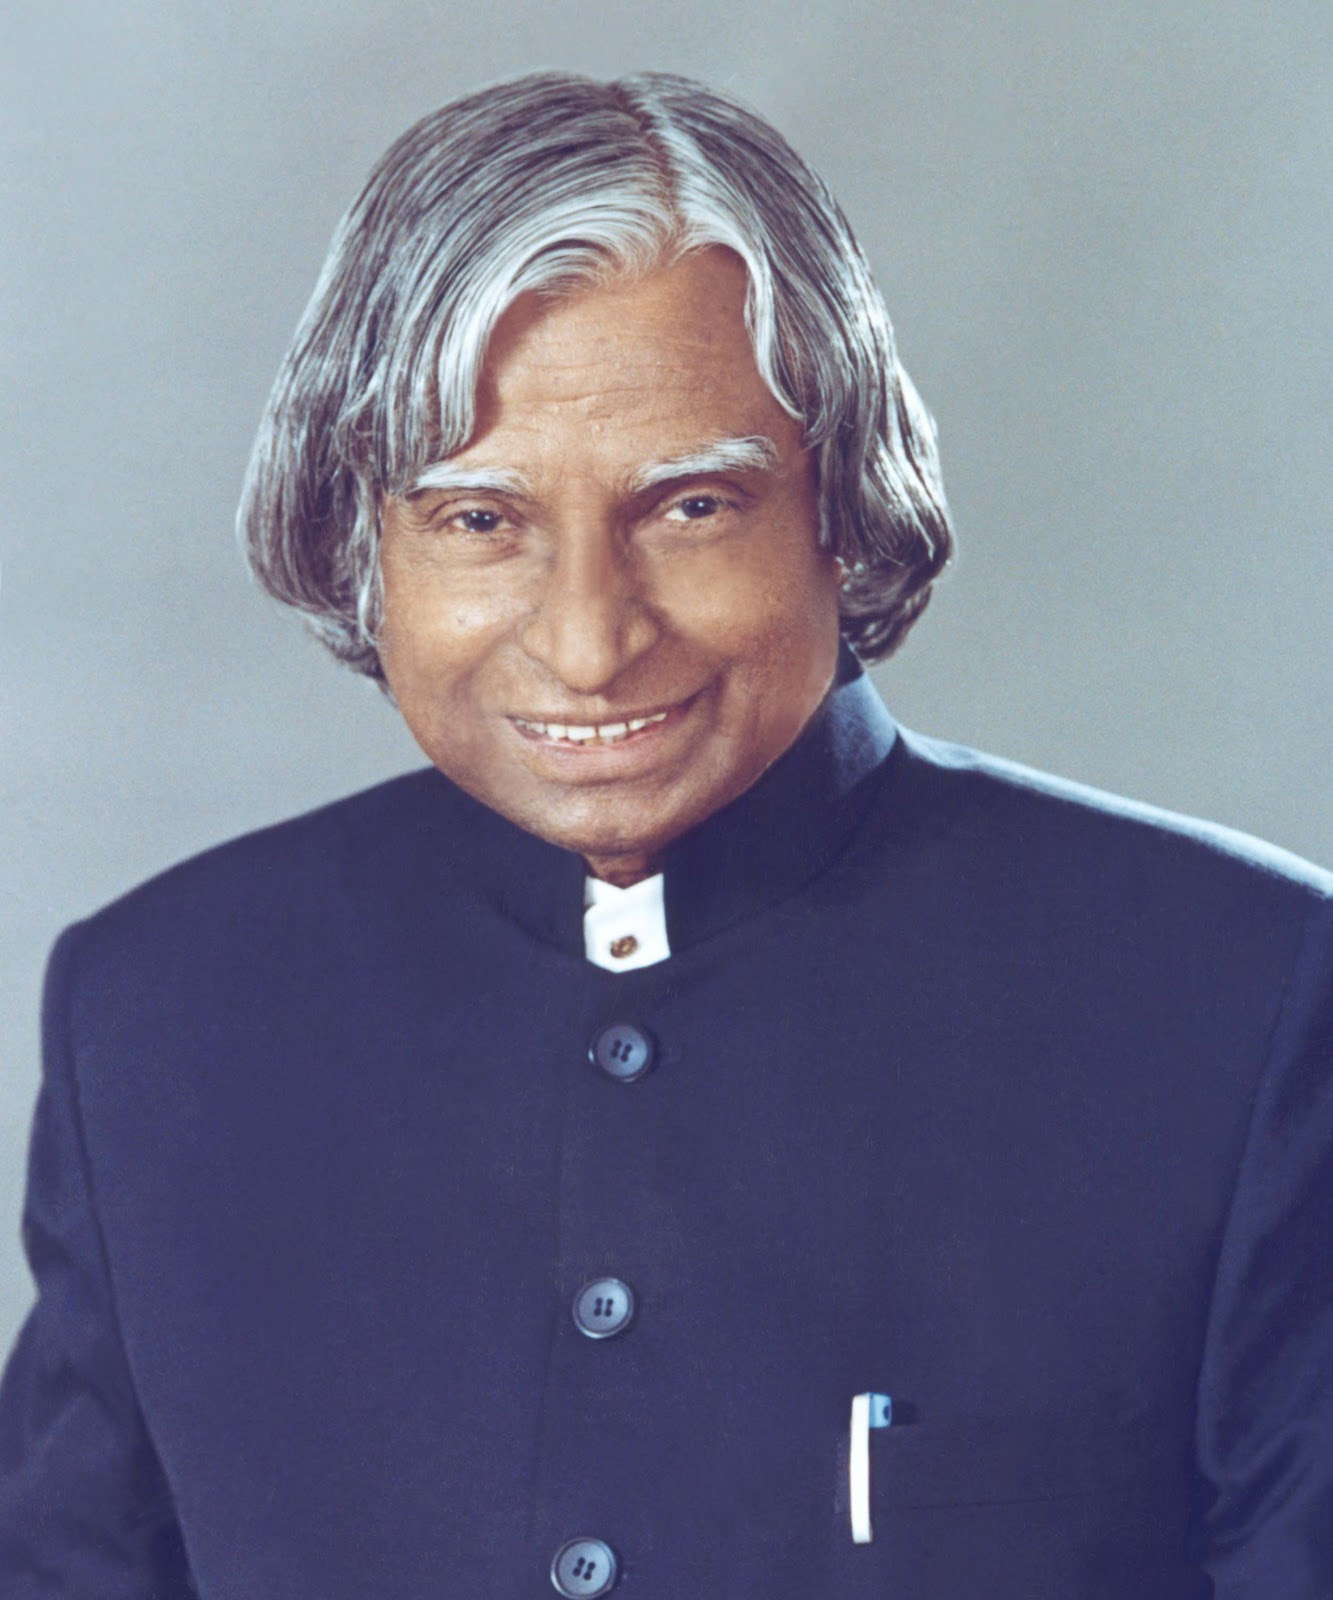 Quotes By Famous Indian Personalities: Abdul Kalam For Indian President